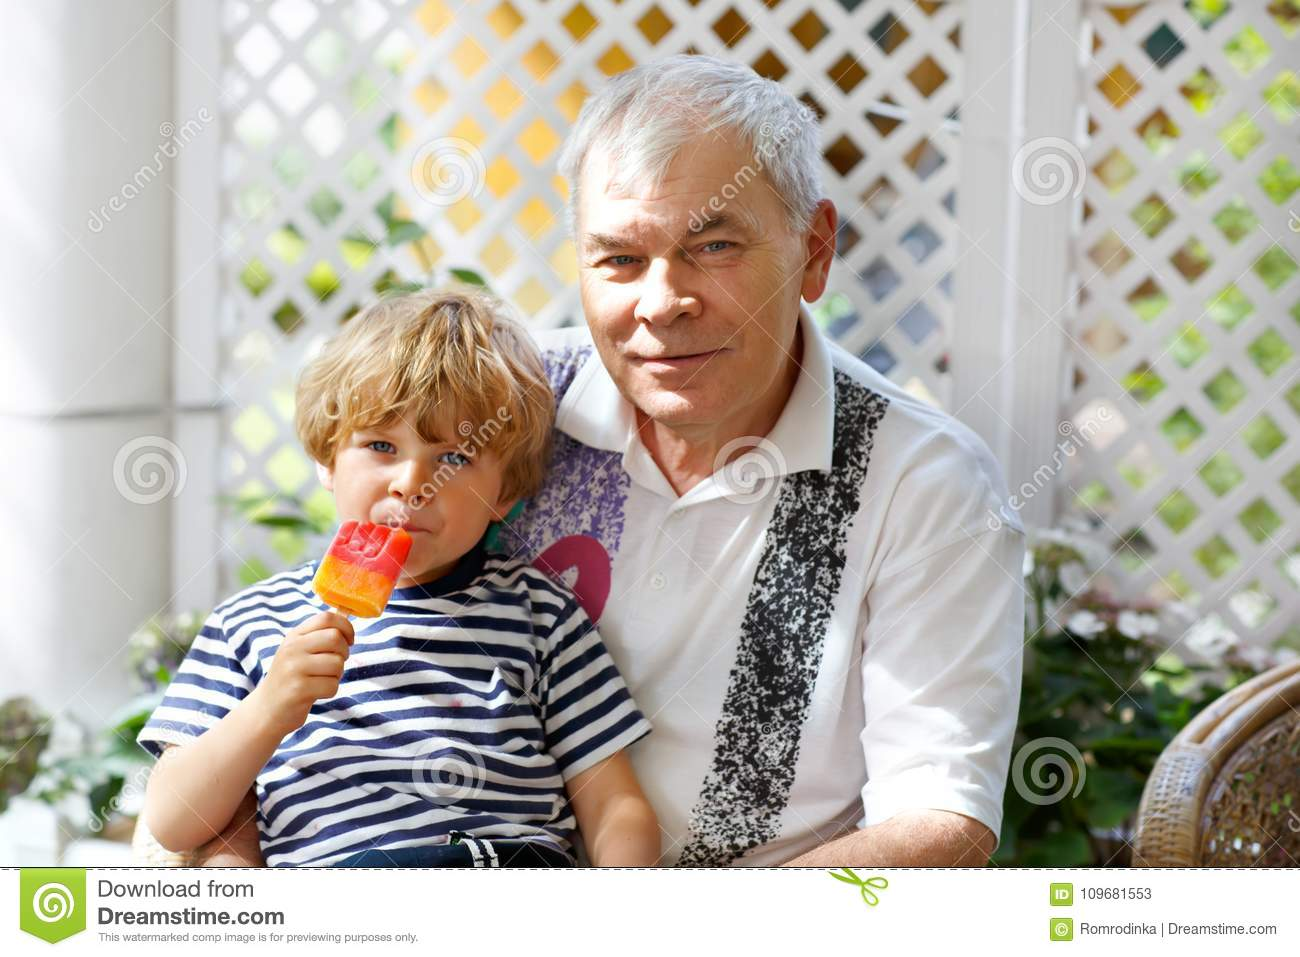 Little blond kid boy and young senior grandfather eating together ice cream in summer